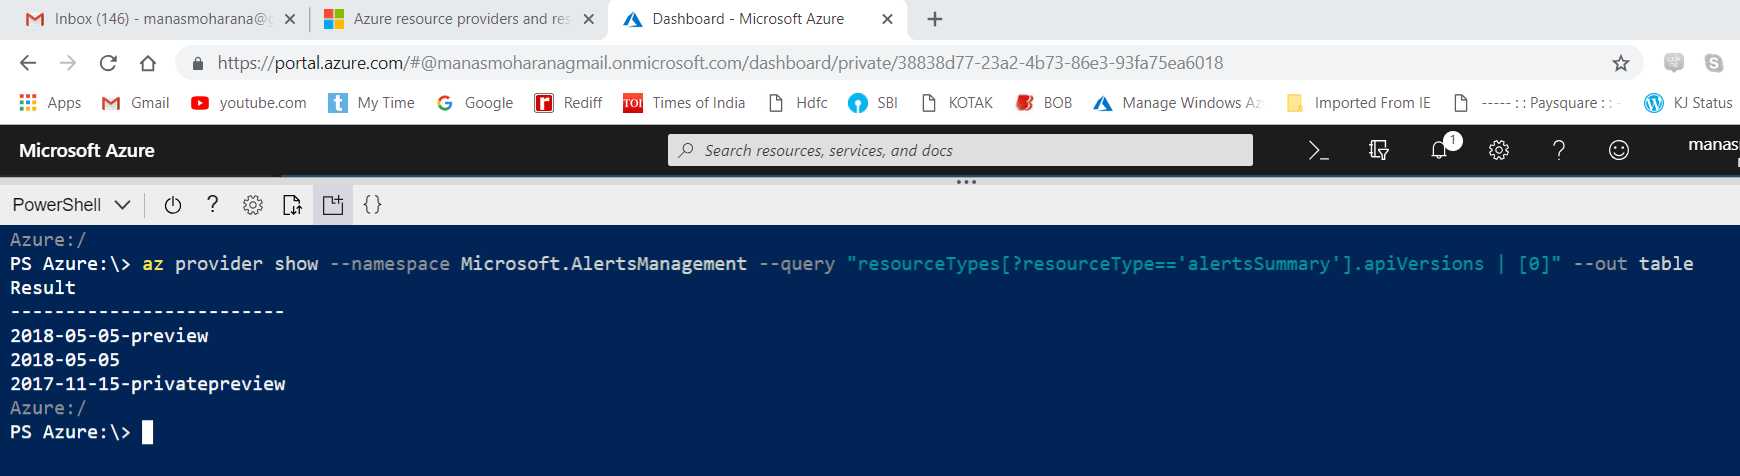 New Resource Provider resistered